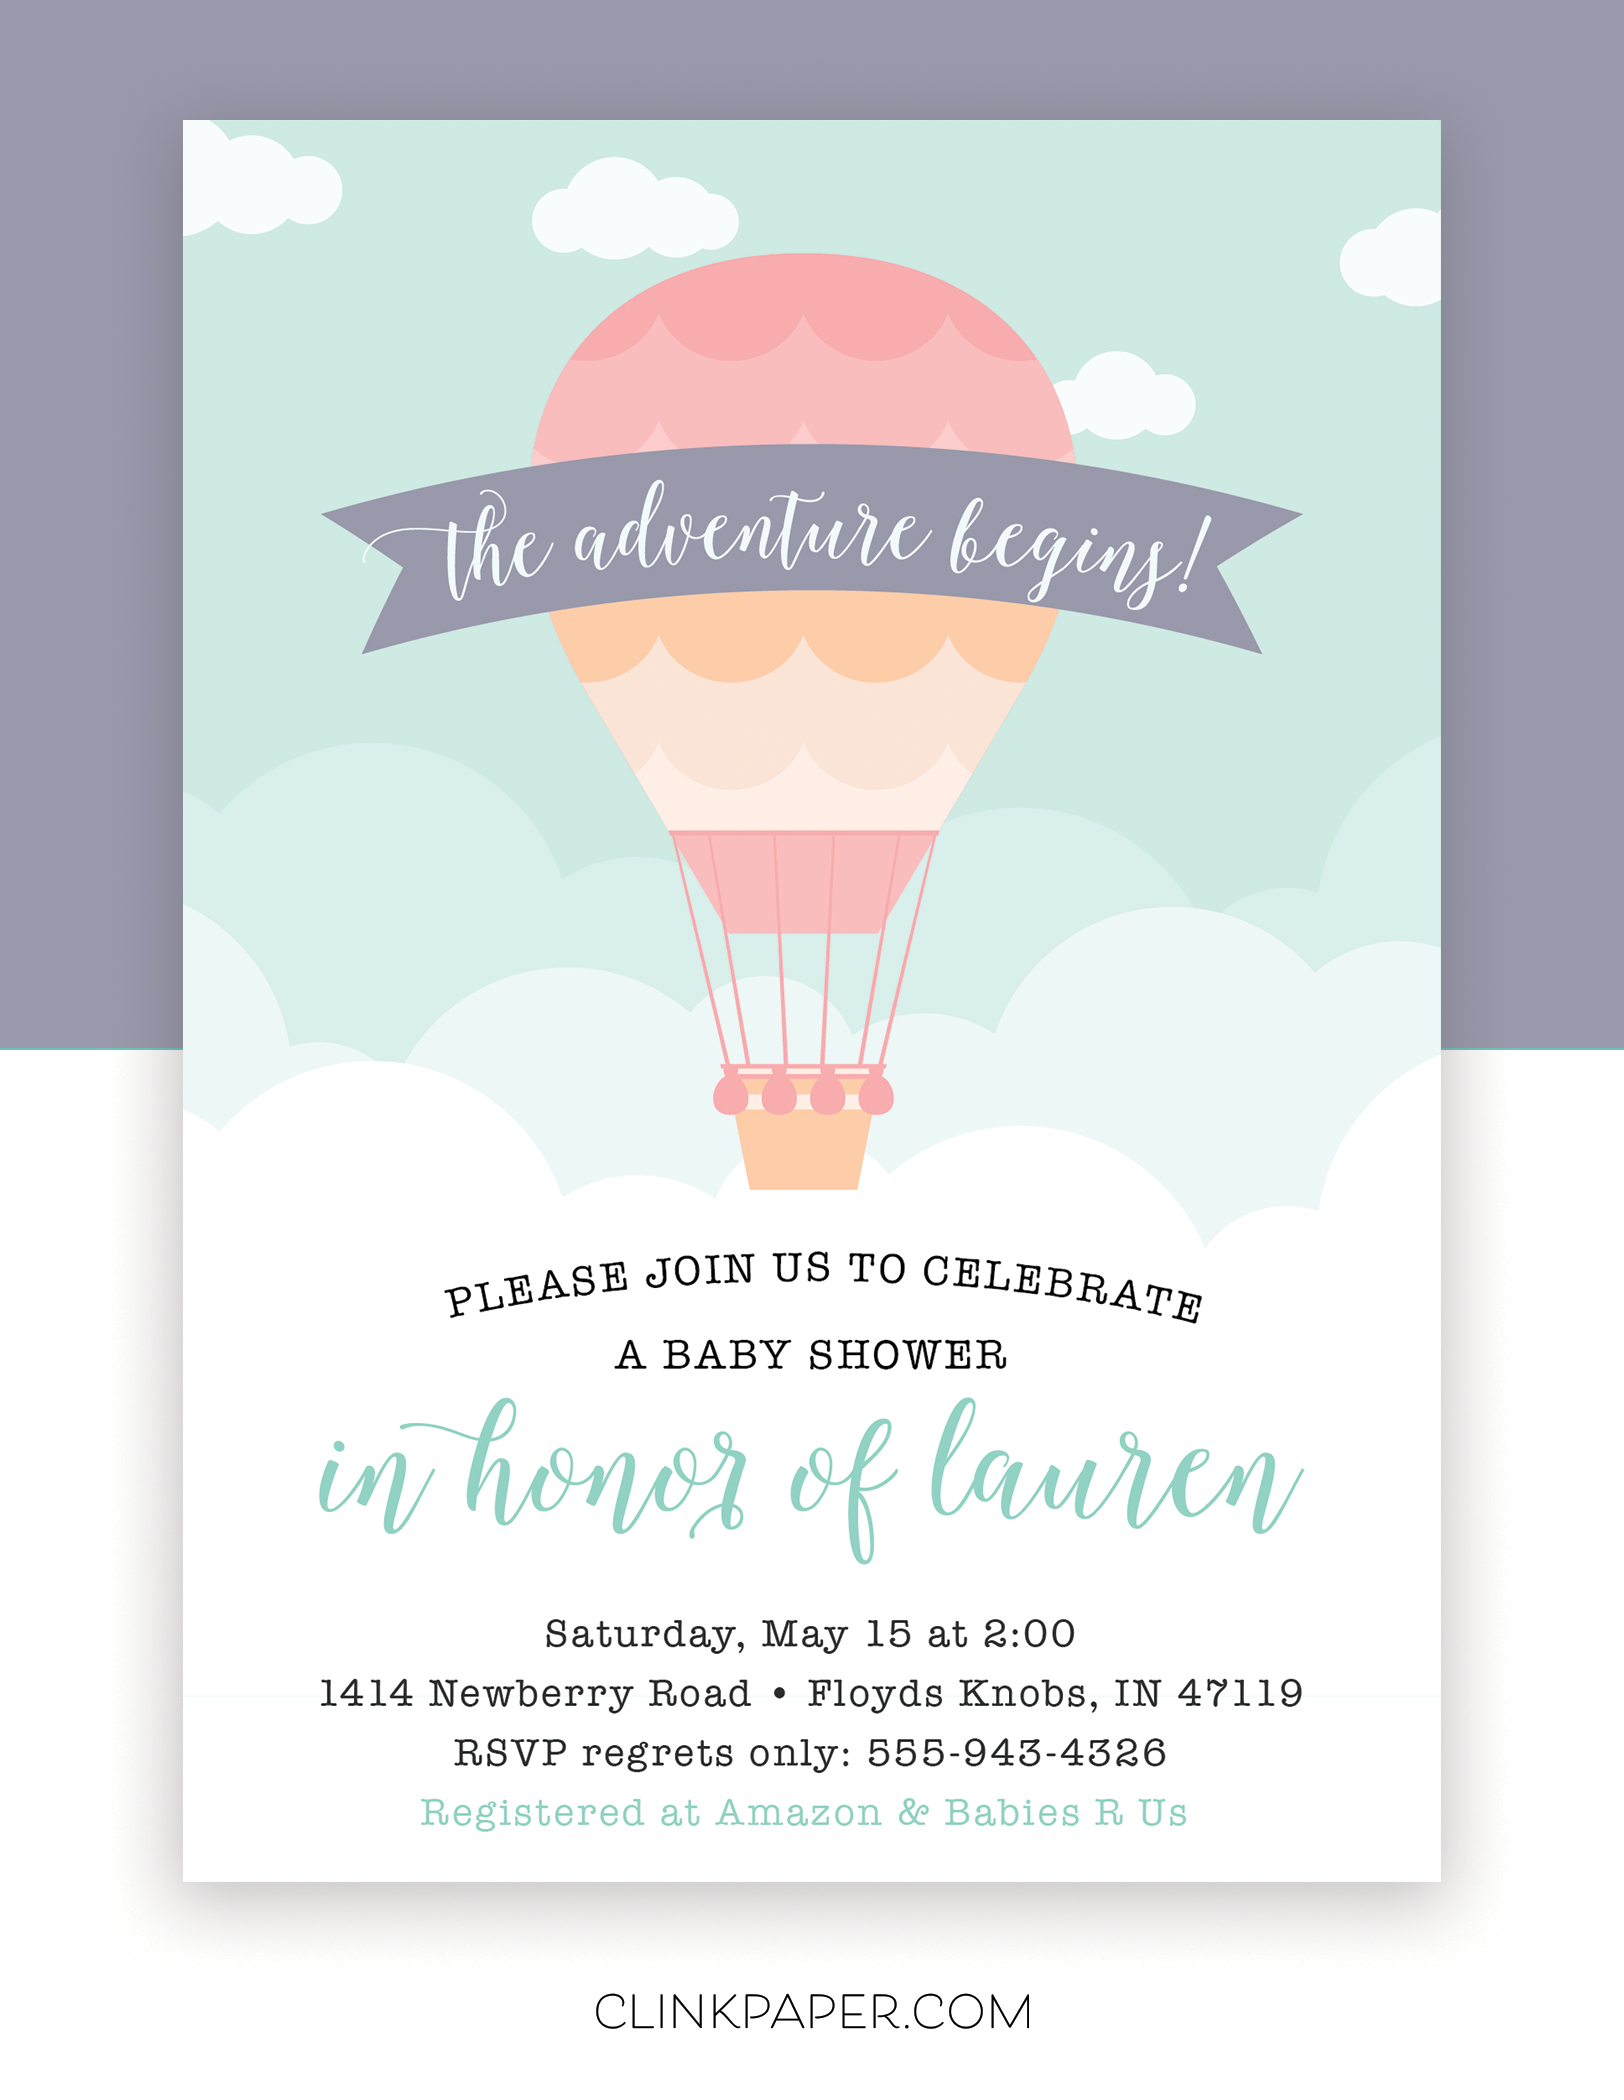 Hot Air Ballon Baby Shower Invitation by Clink Paper | Travel ...